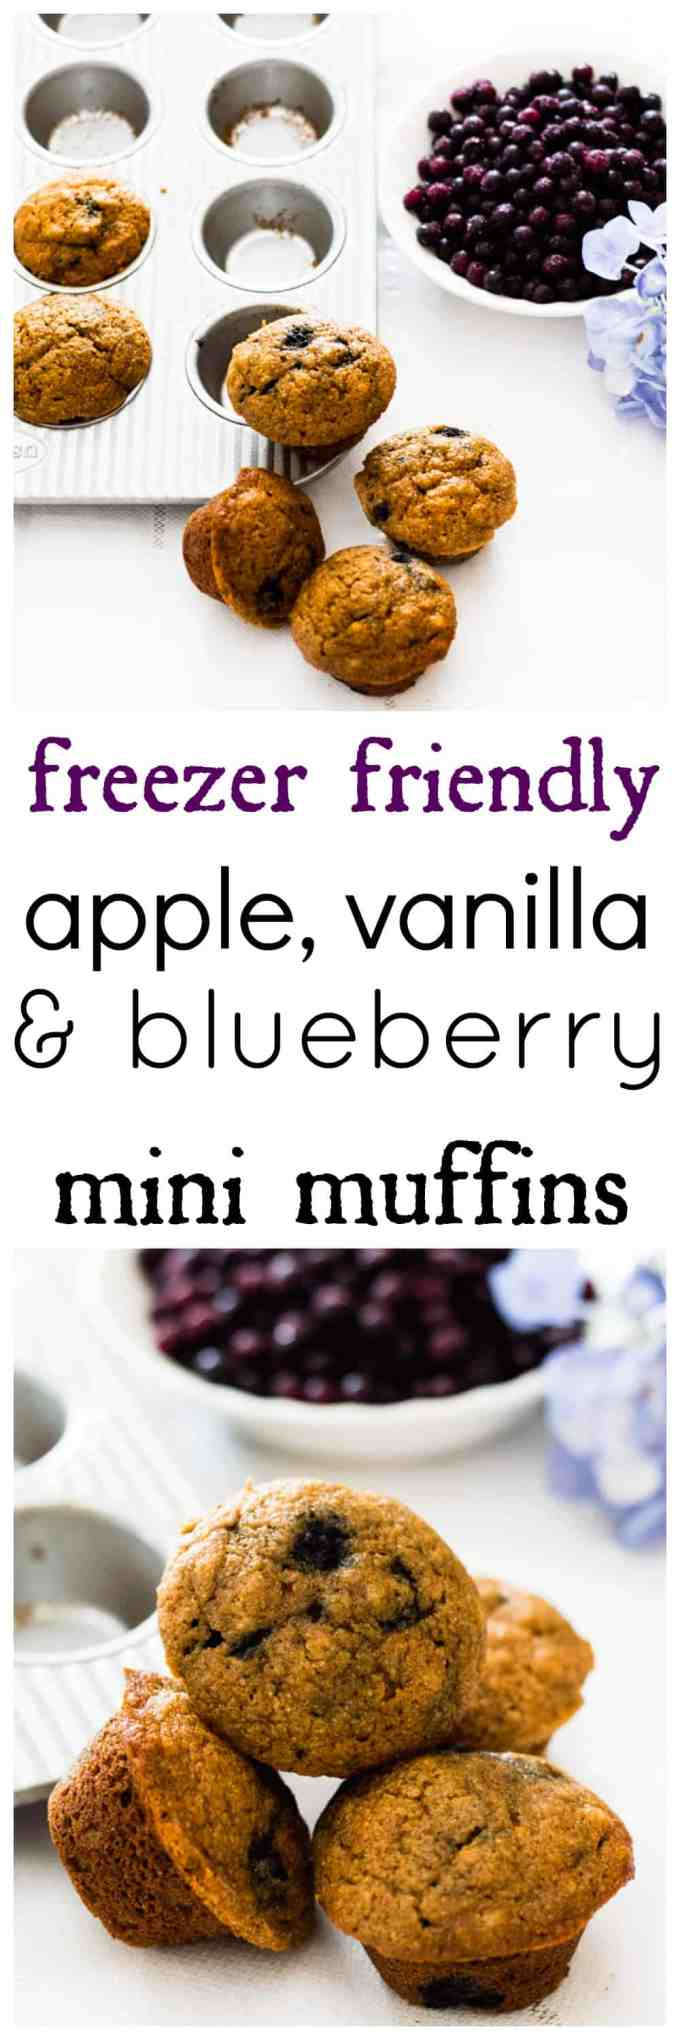 Apple Vanilla and Blueberry Mini Muffins are a perfect freezer friendly grab and go snack.